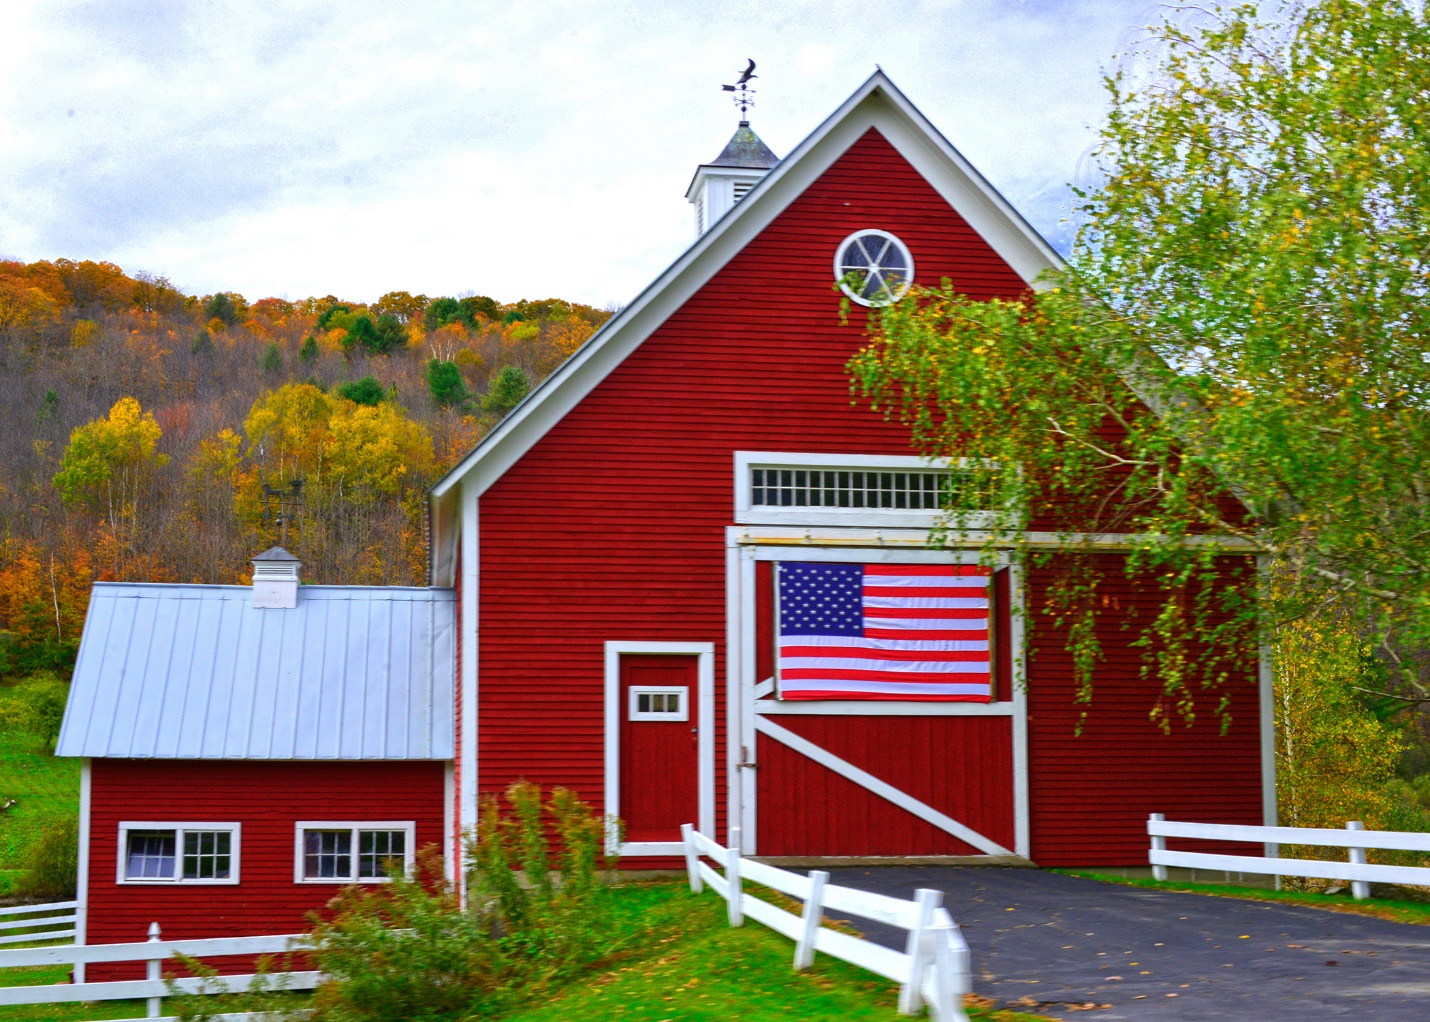 New Engand Itinerary: Colors of New England